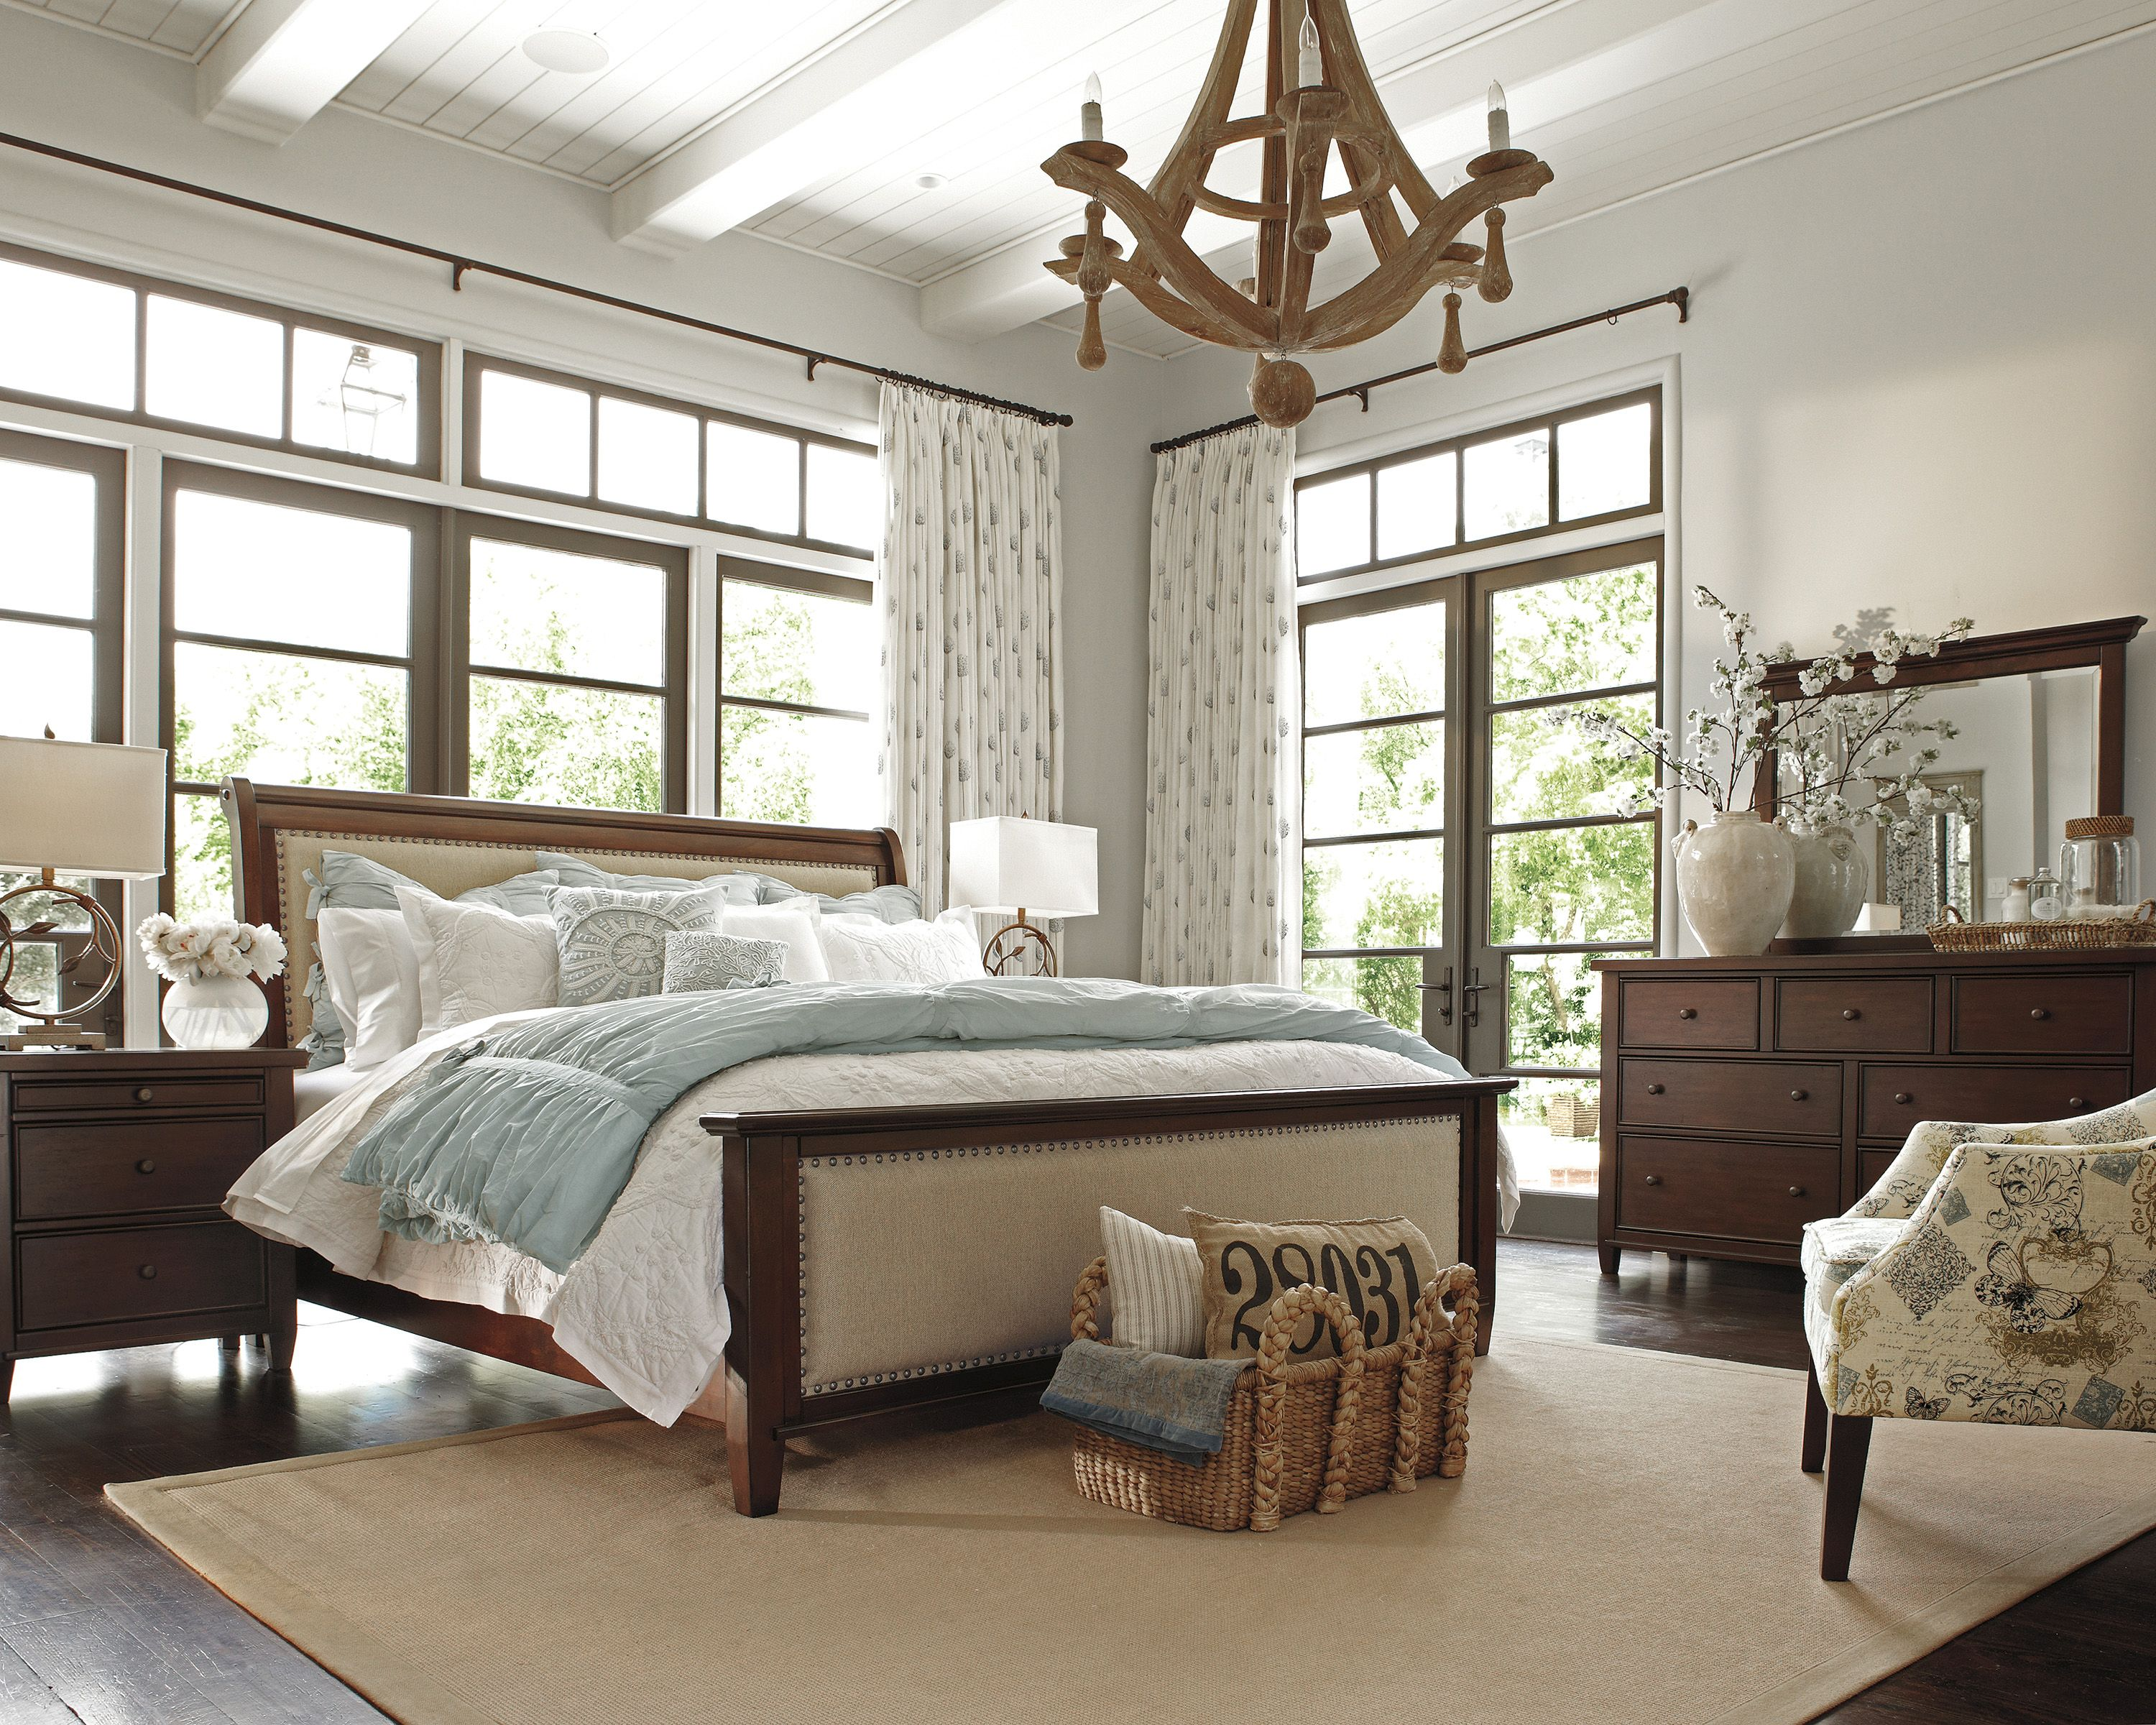 Hindell park bedroom by Ashley Furniture